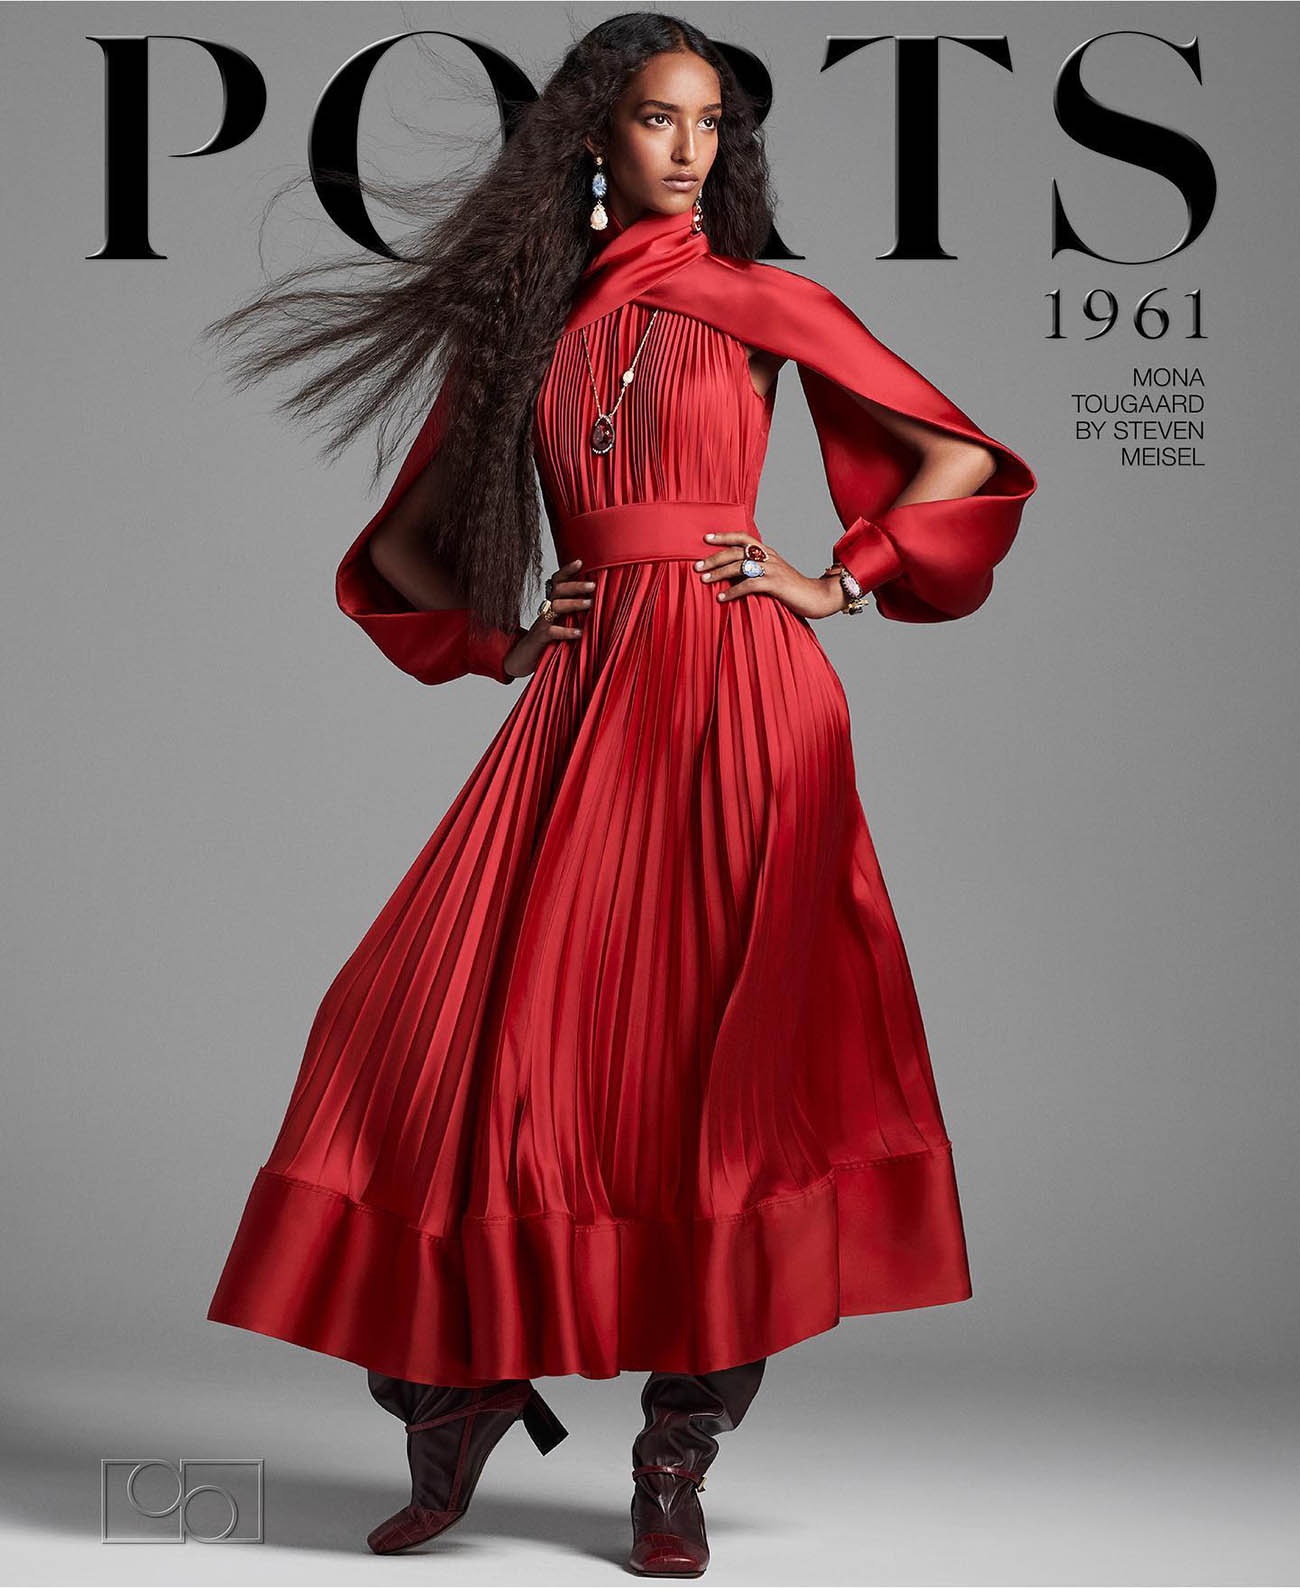 Ports 1961 Fall Winter 2020 Campaign